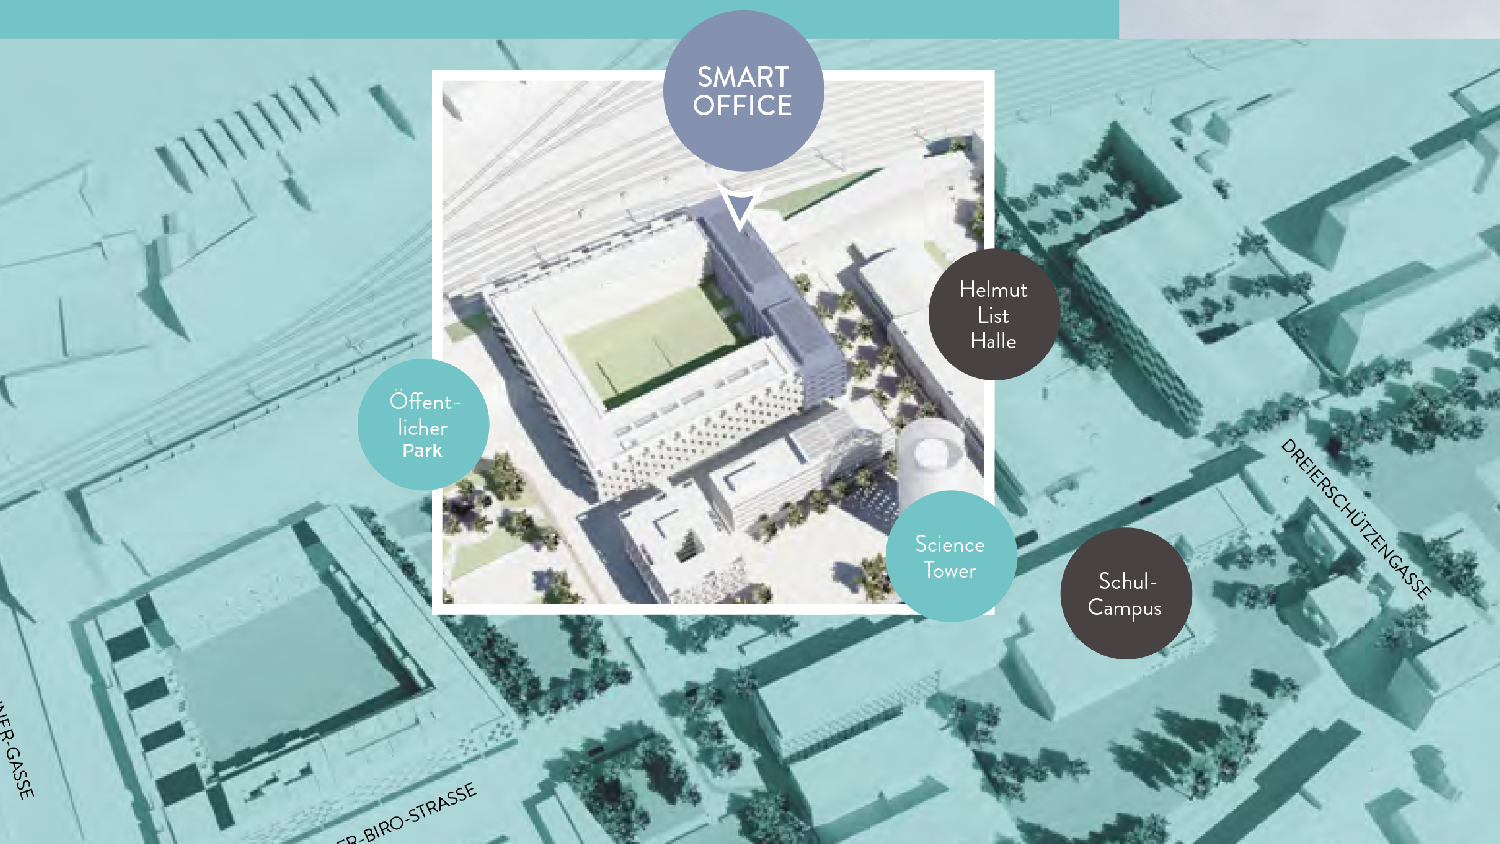 Smart City Mitte, Lageplan Smart Office